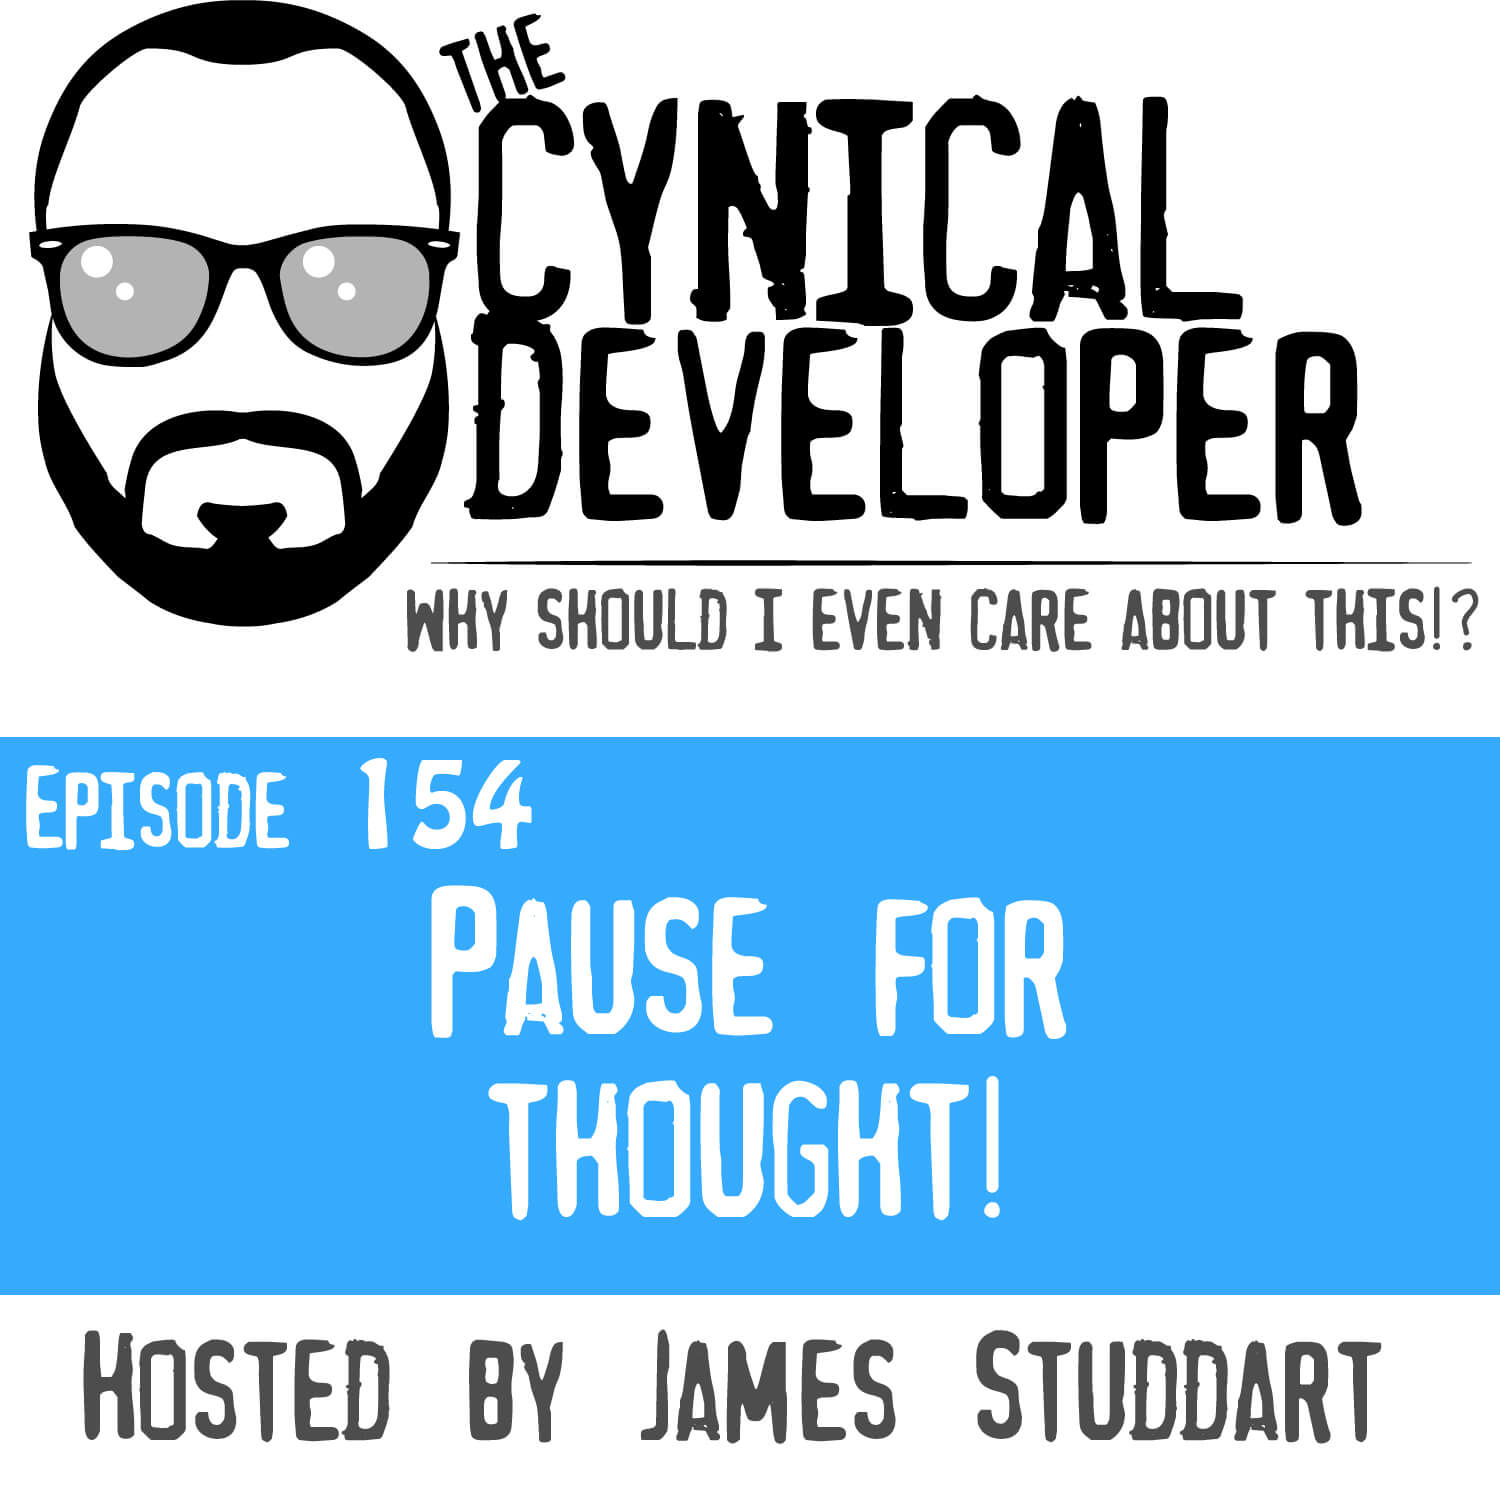 Episode 154 - Pause for thought